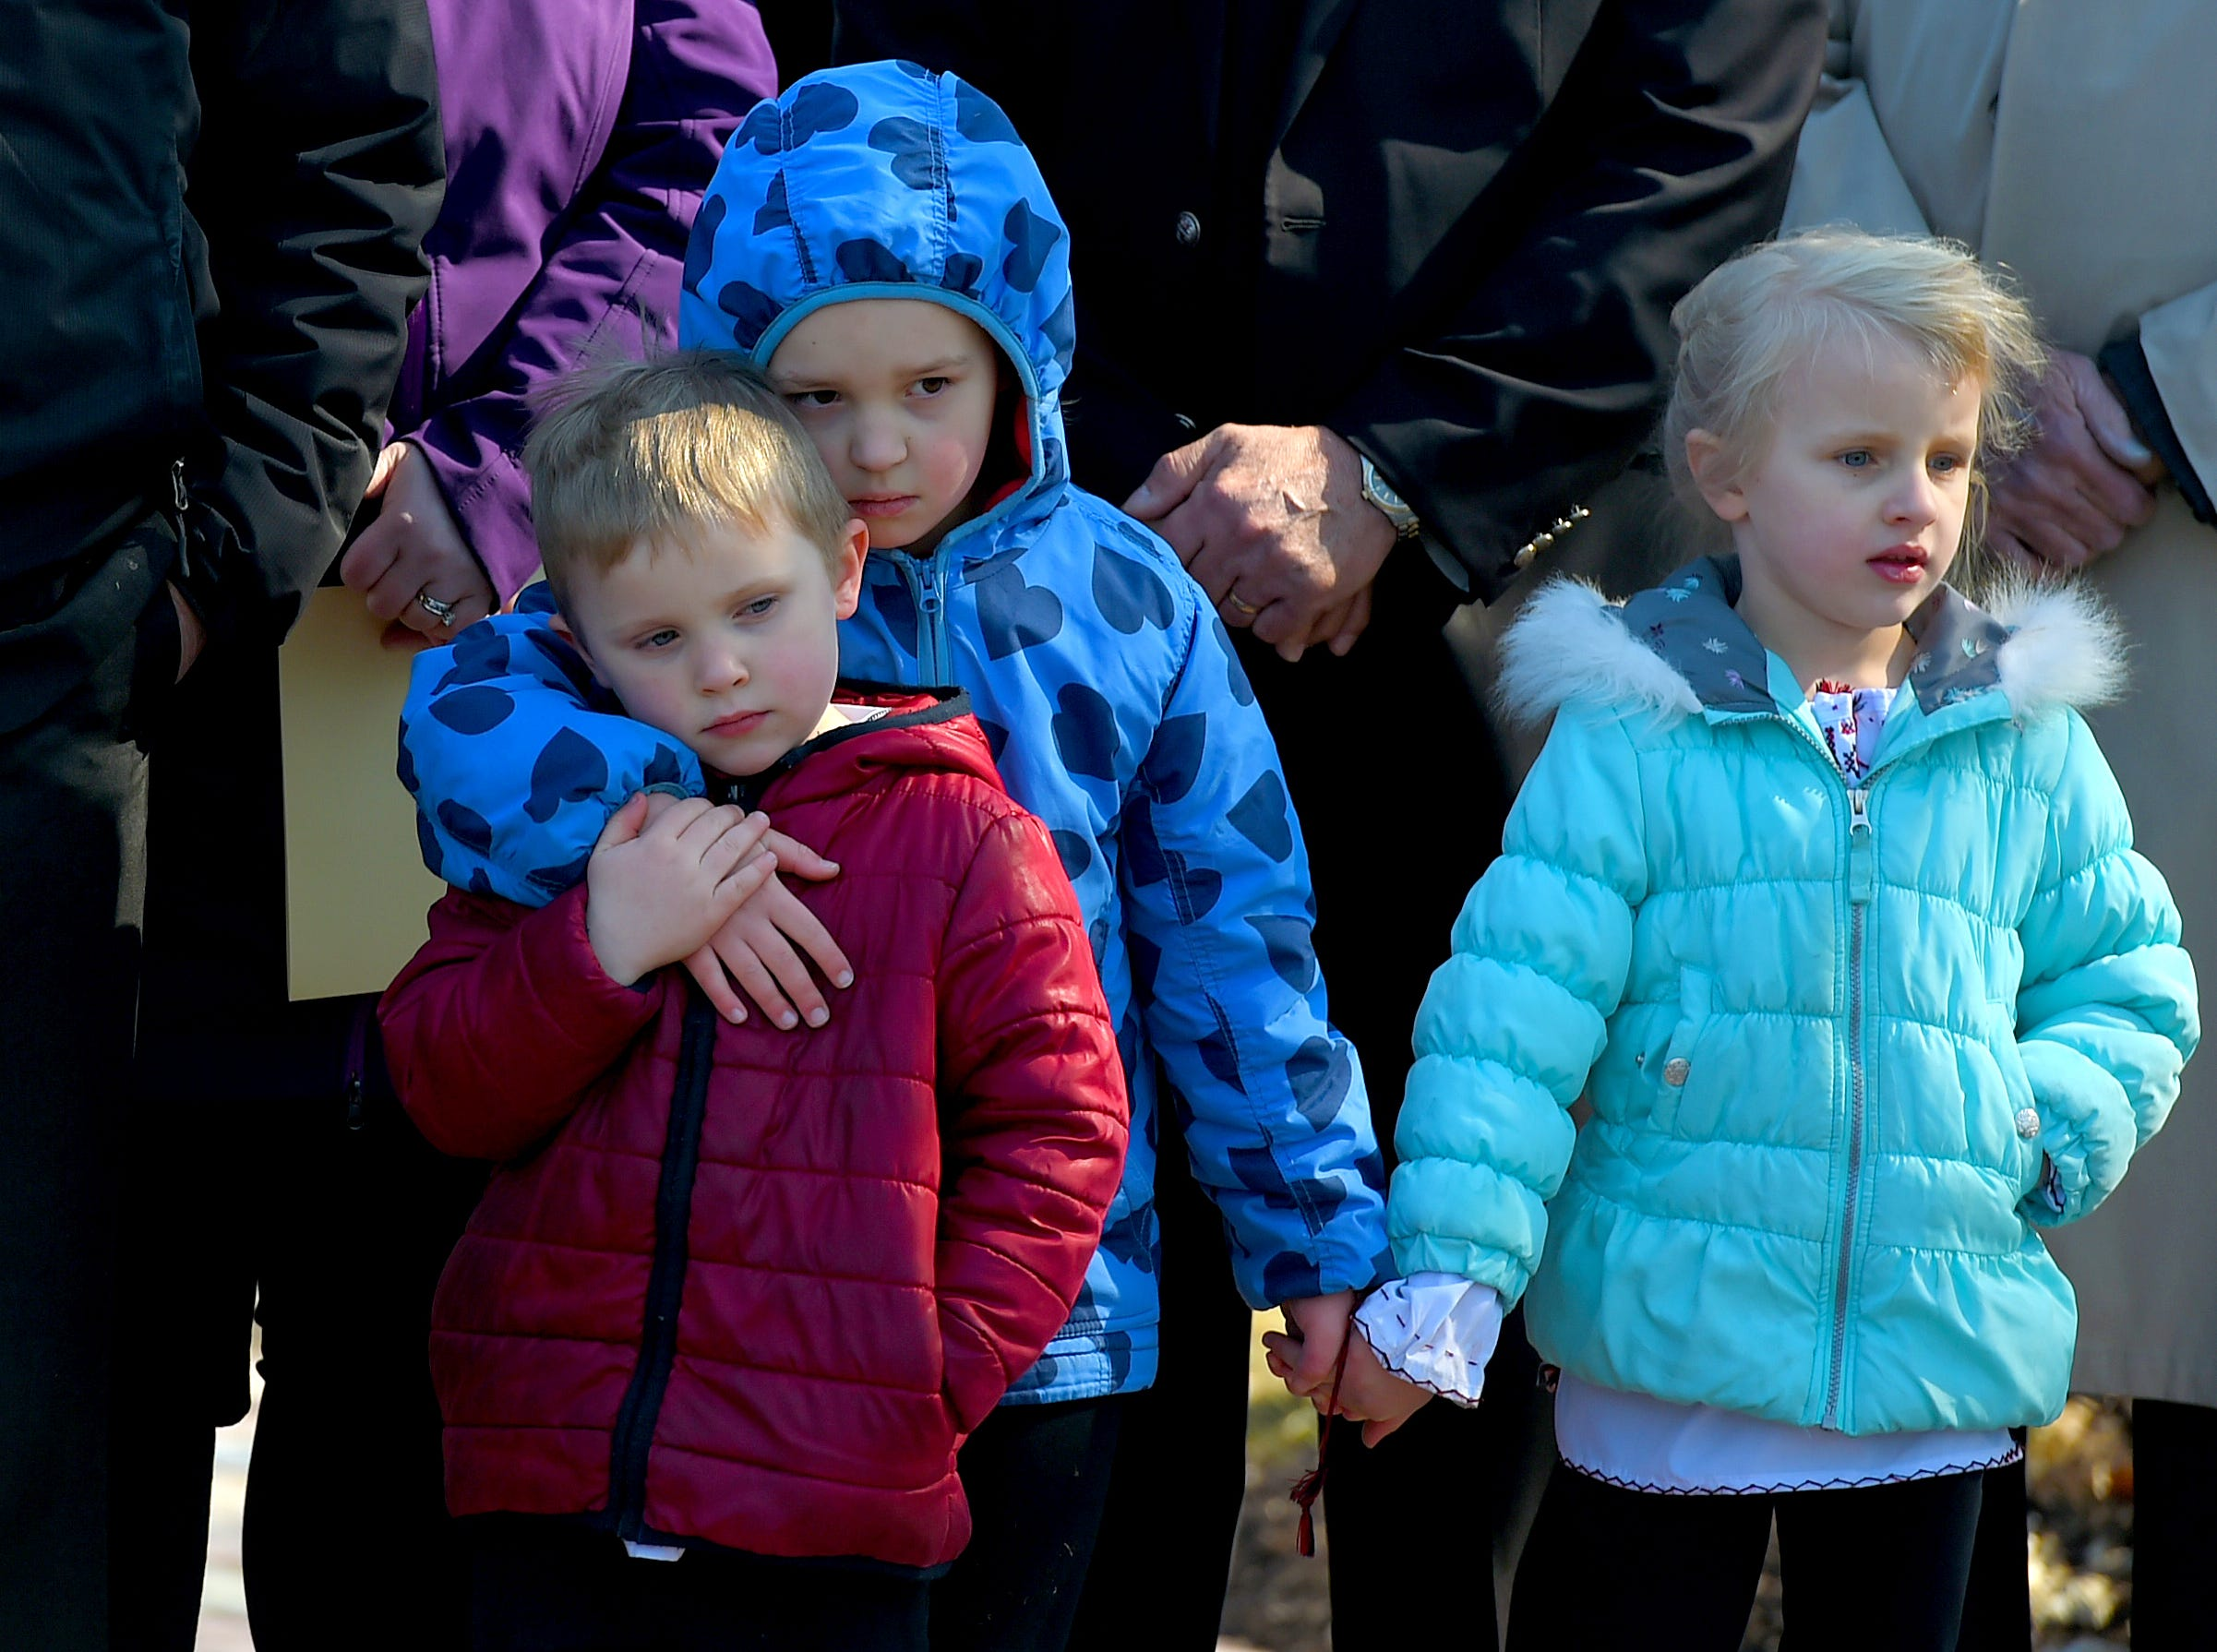 The grandchildren of Maria Zobniw, who was among the 13 victims of the 2009 mass shooting at the American Civic Association in Binghamton, during a Wednesday gathering at the ACA Memorial which was held in honor the tenth anniversary of the tragedy. April 3, 2019.